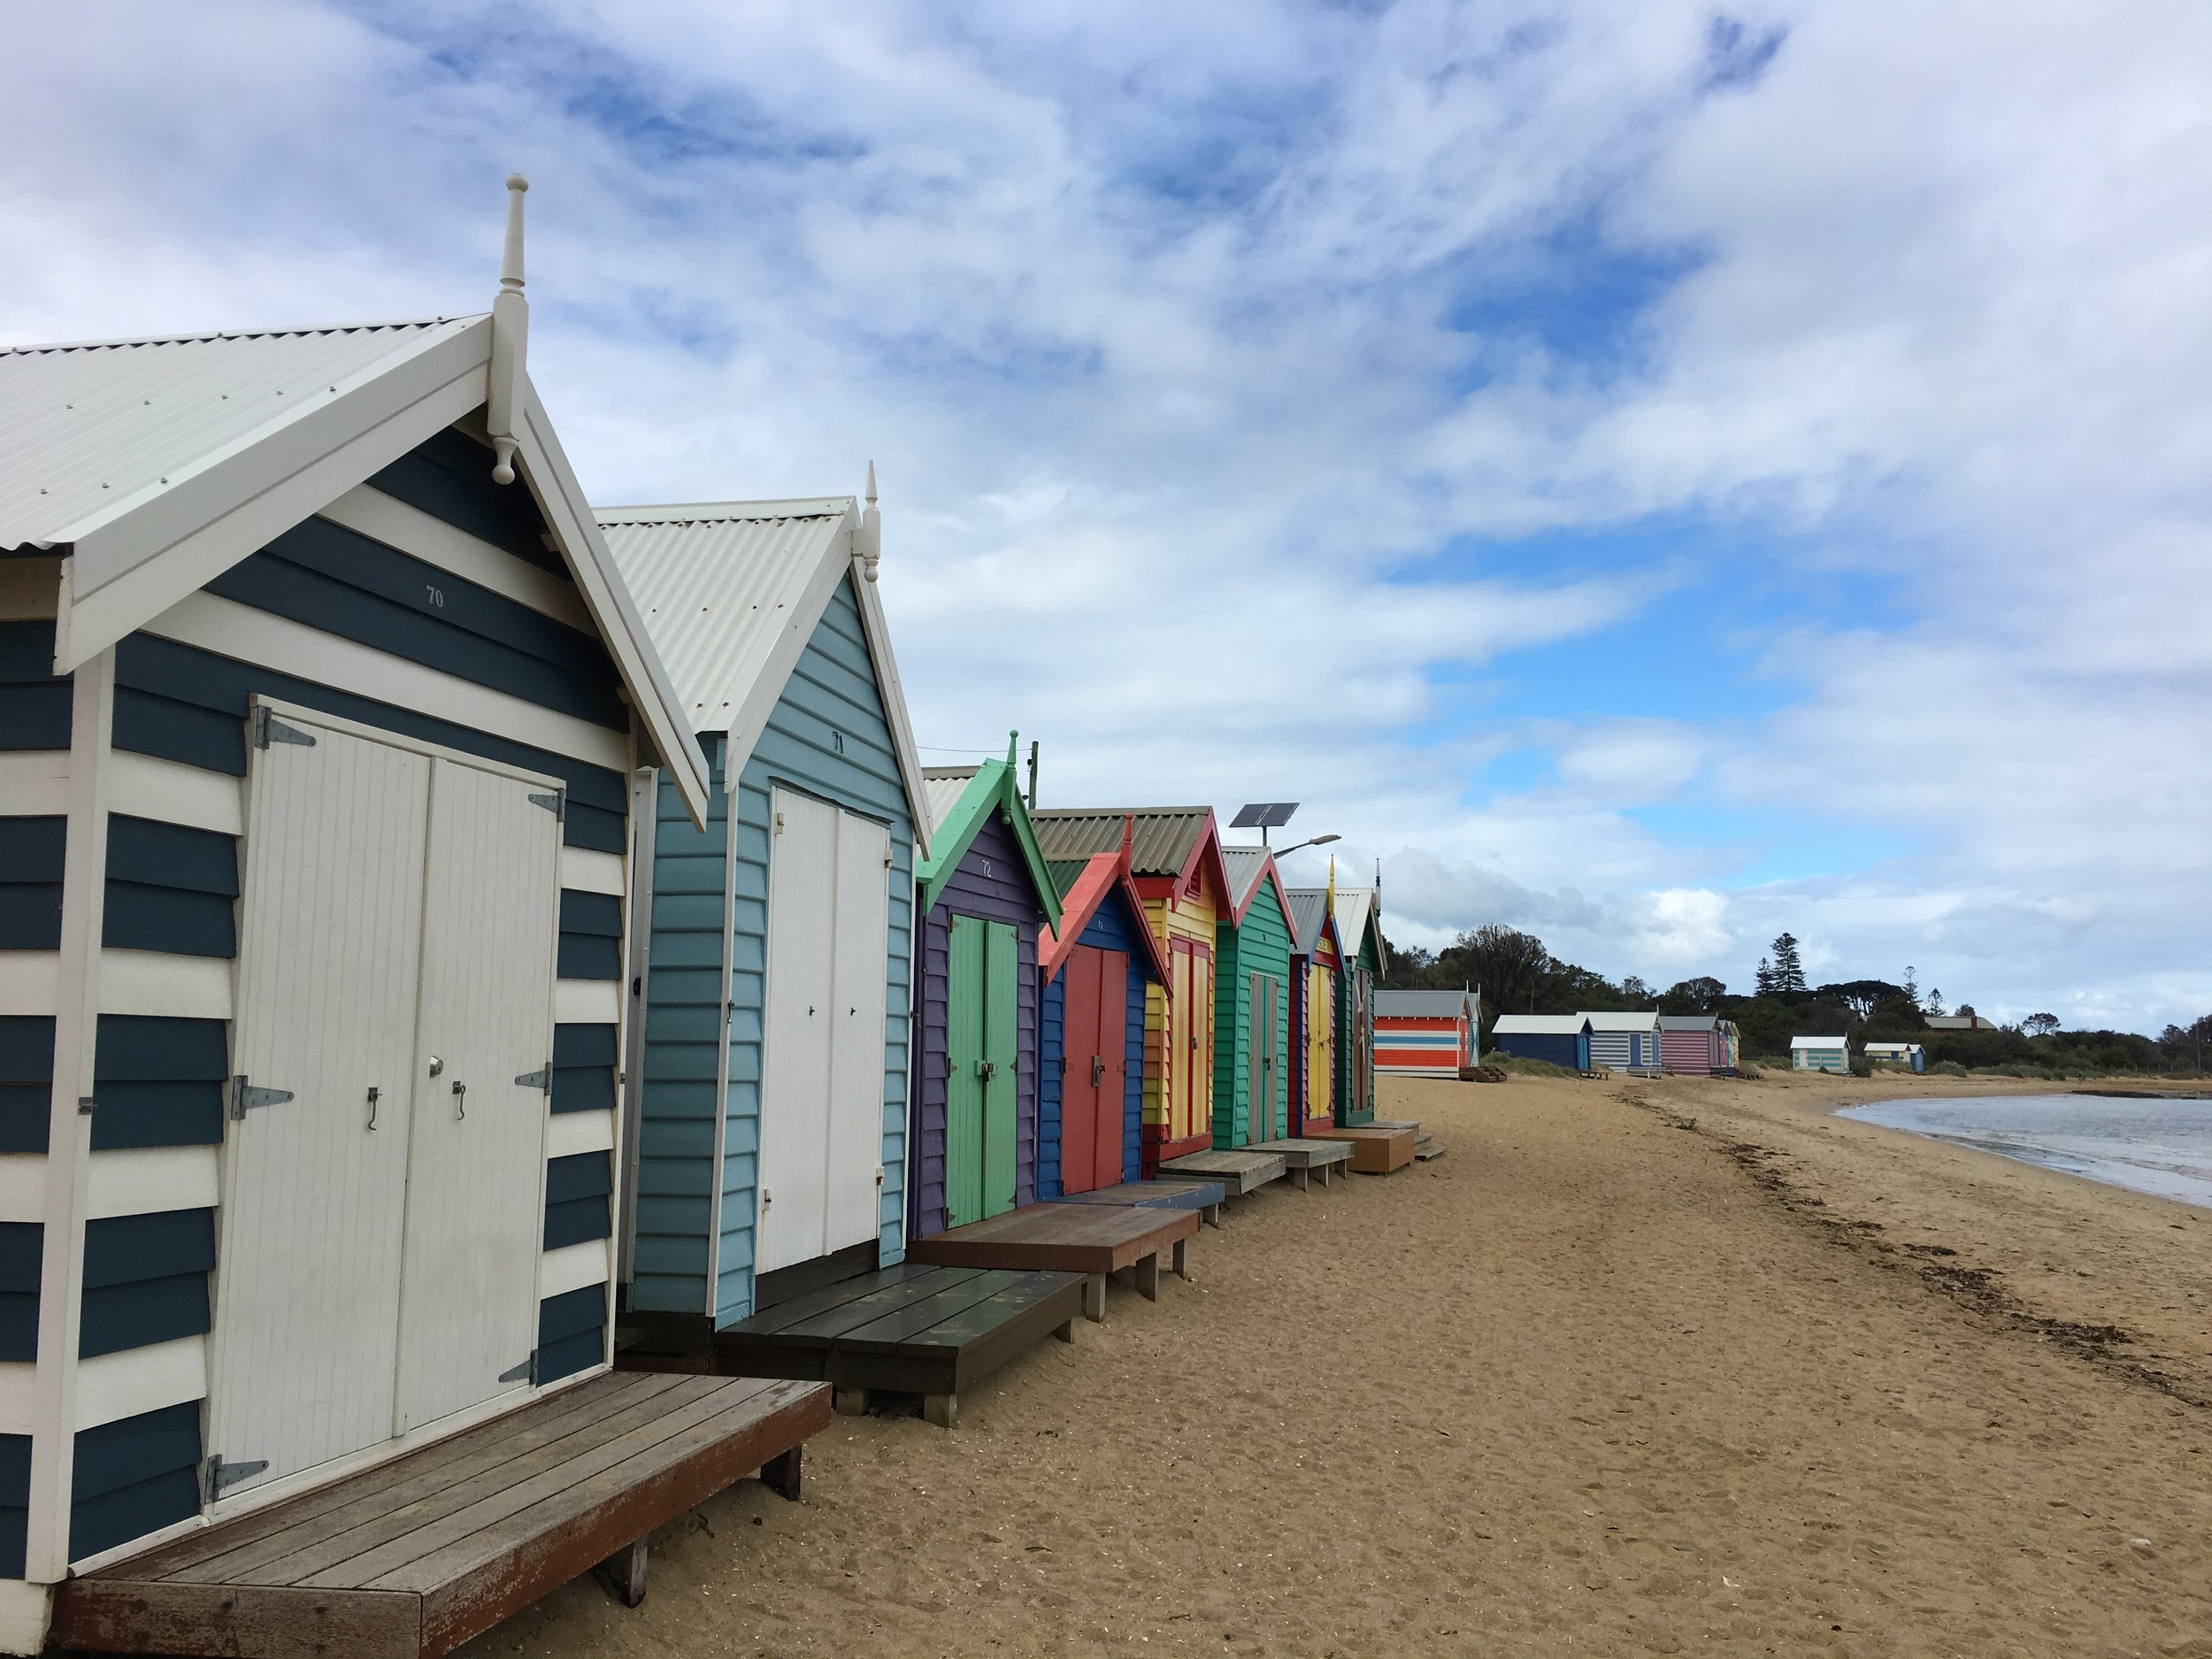 Another reason to travel: To see the beautiful beach boxes in Brighton